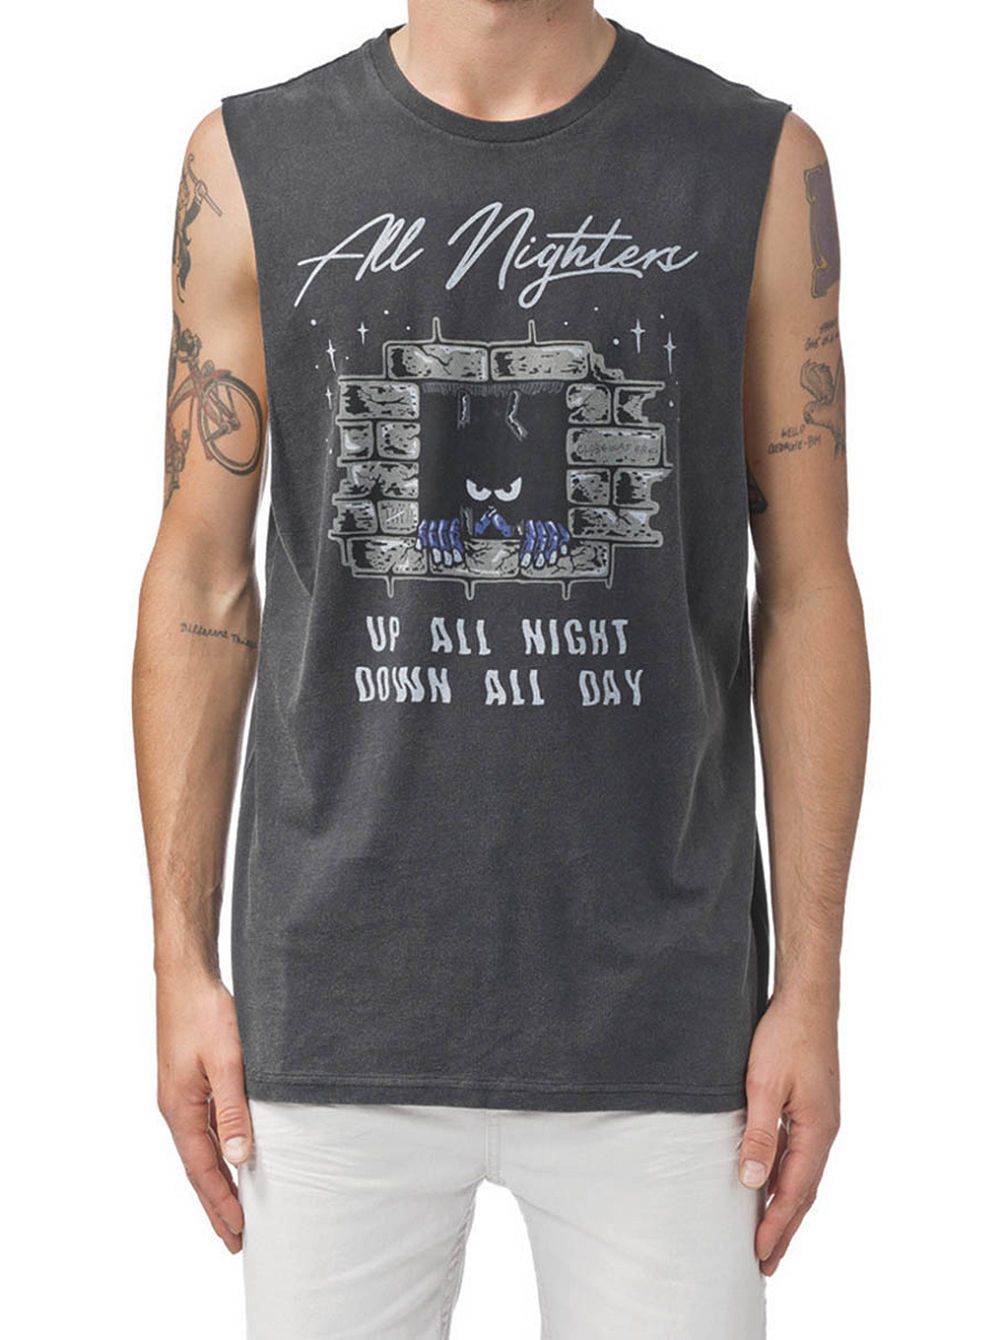 All Nighters Tank Top